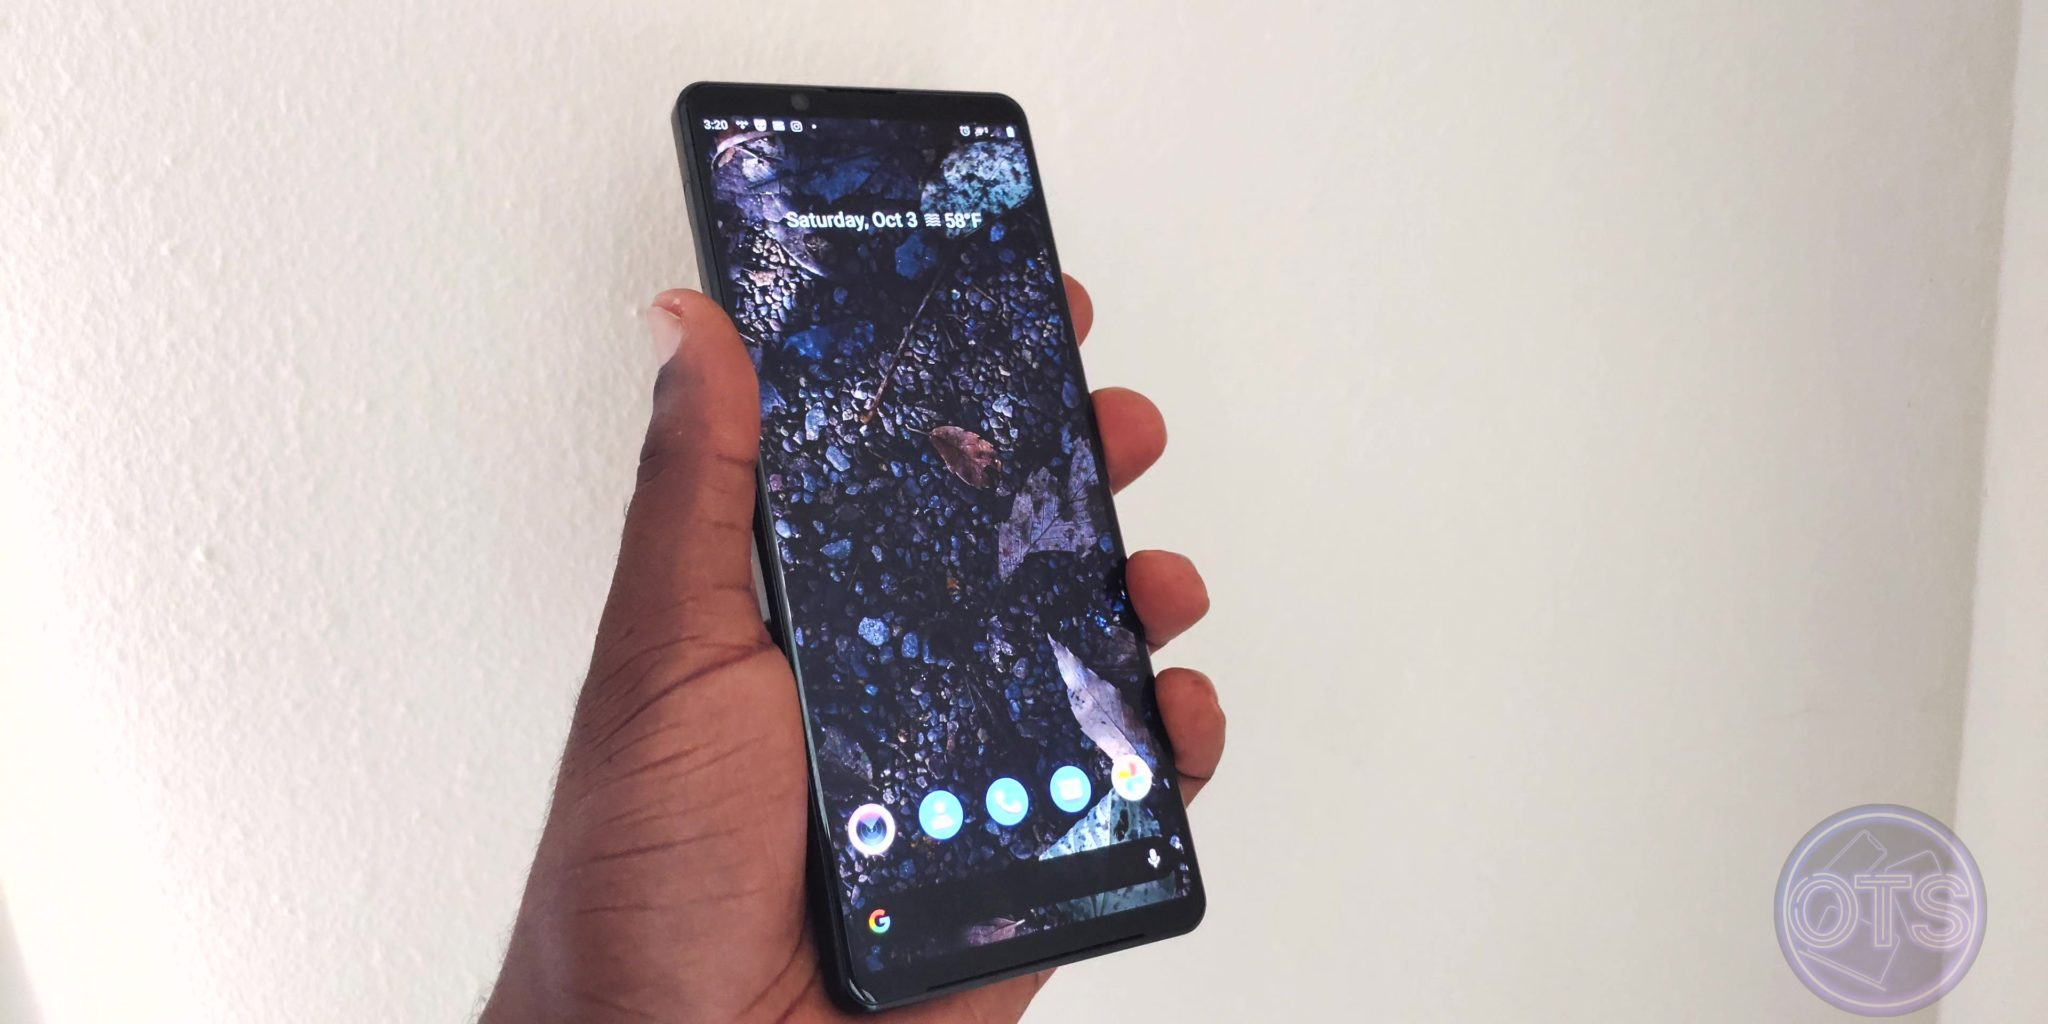 xperia 1 ii display